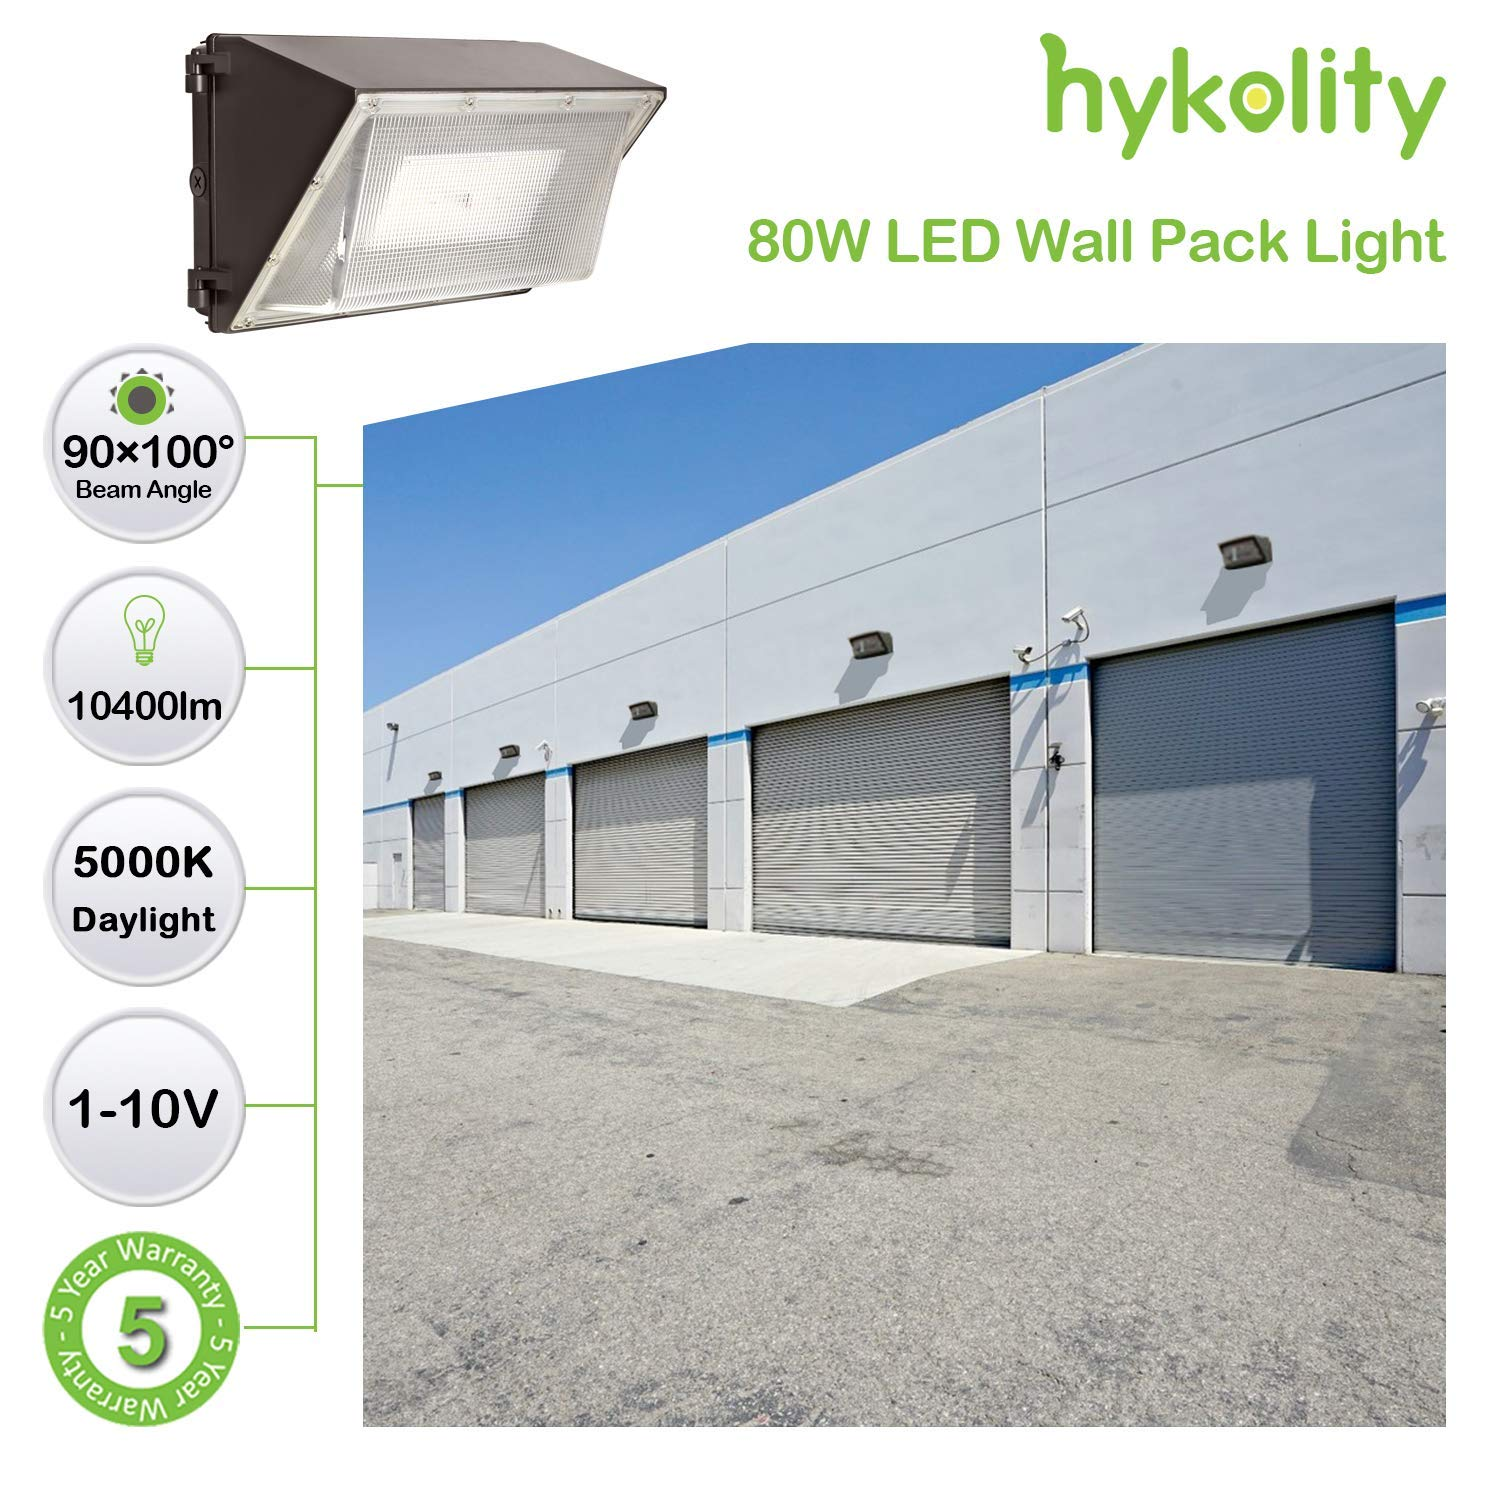 Dusk to Dawn Outdoor Commercial LED Area Light,1-10V Dimmable,5000K Daylight DLC Complied Hykolity 120W 15600lm High-Output LED Wall Pack with Photocell,Brighter Than 400W MH